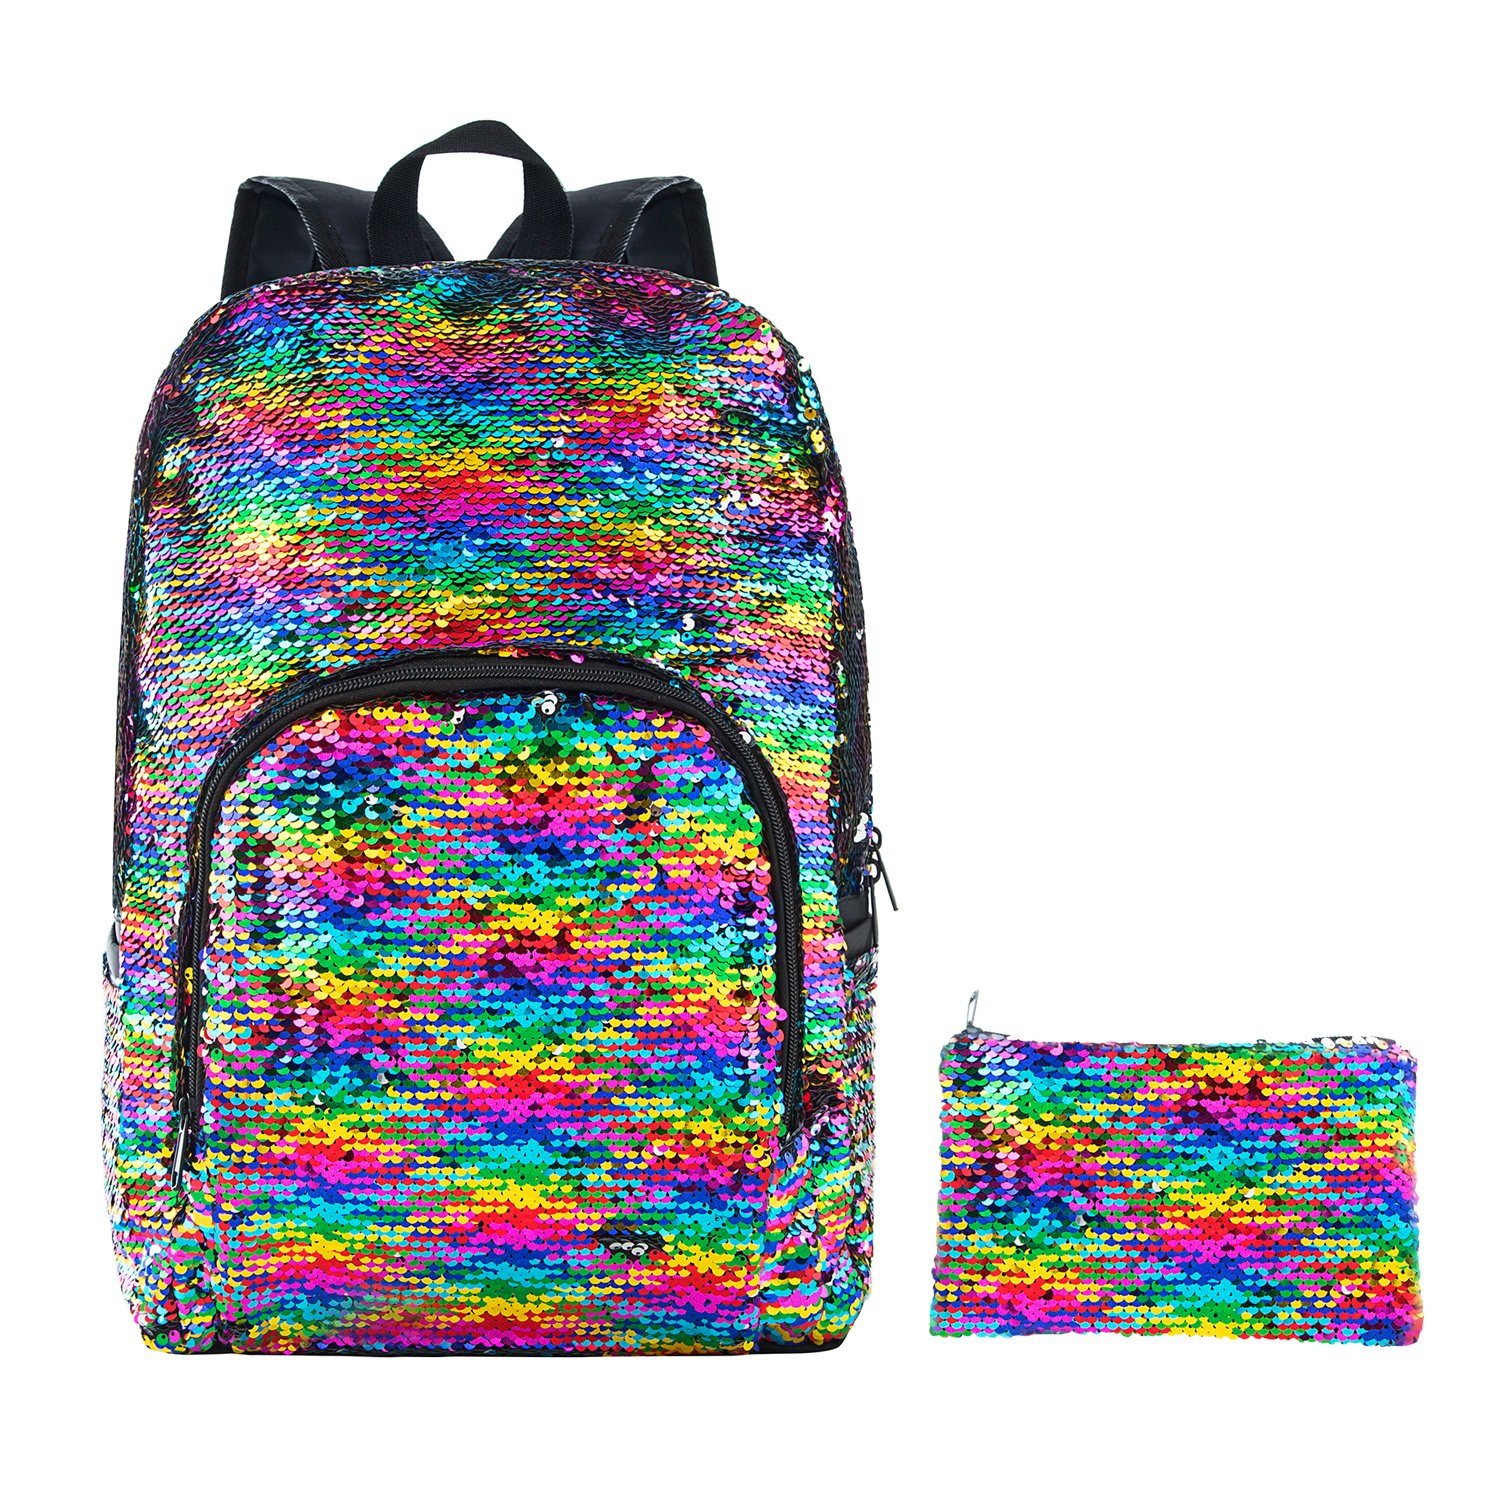 HeySun Reversible Sequins Backpack Magic Bookbag for Girls Sequence Backpack with Pen Case (Rainbow/Silver)